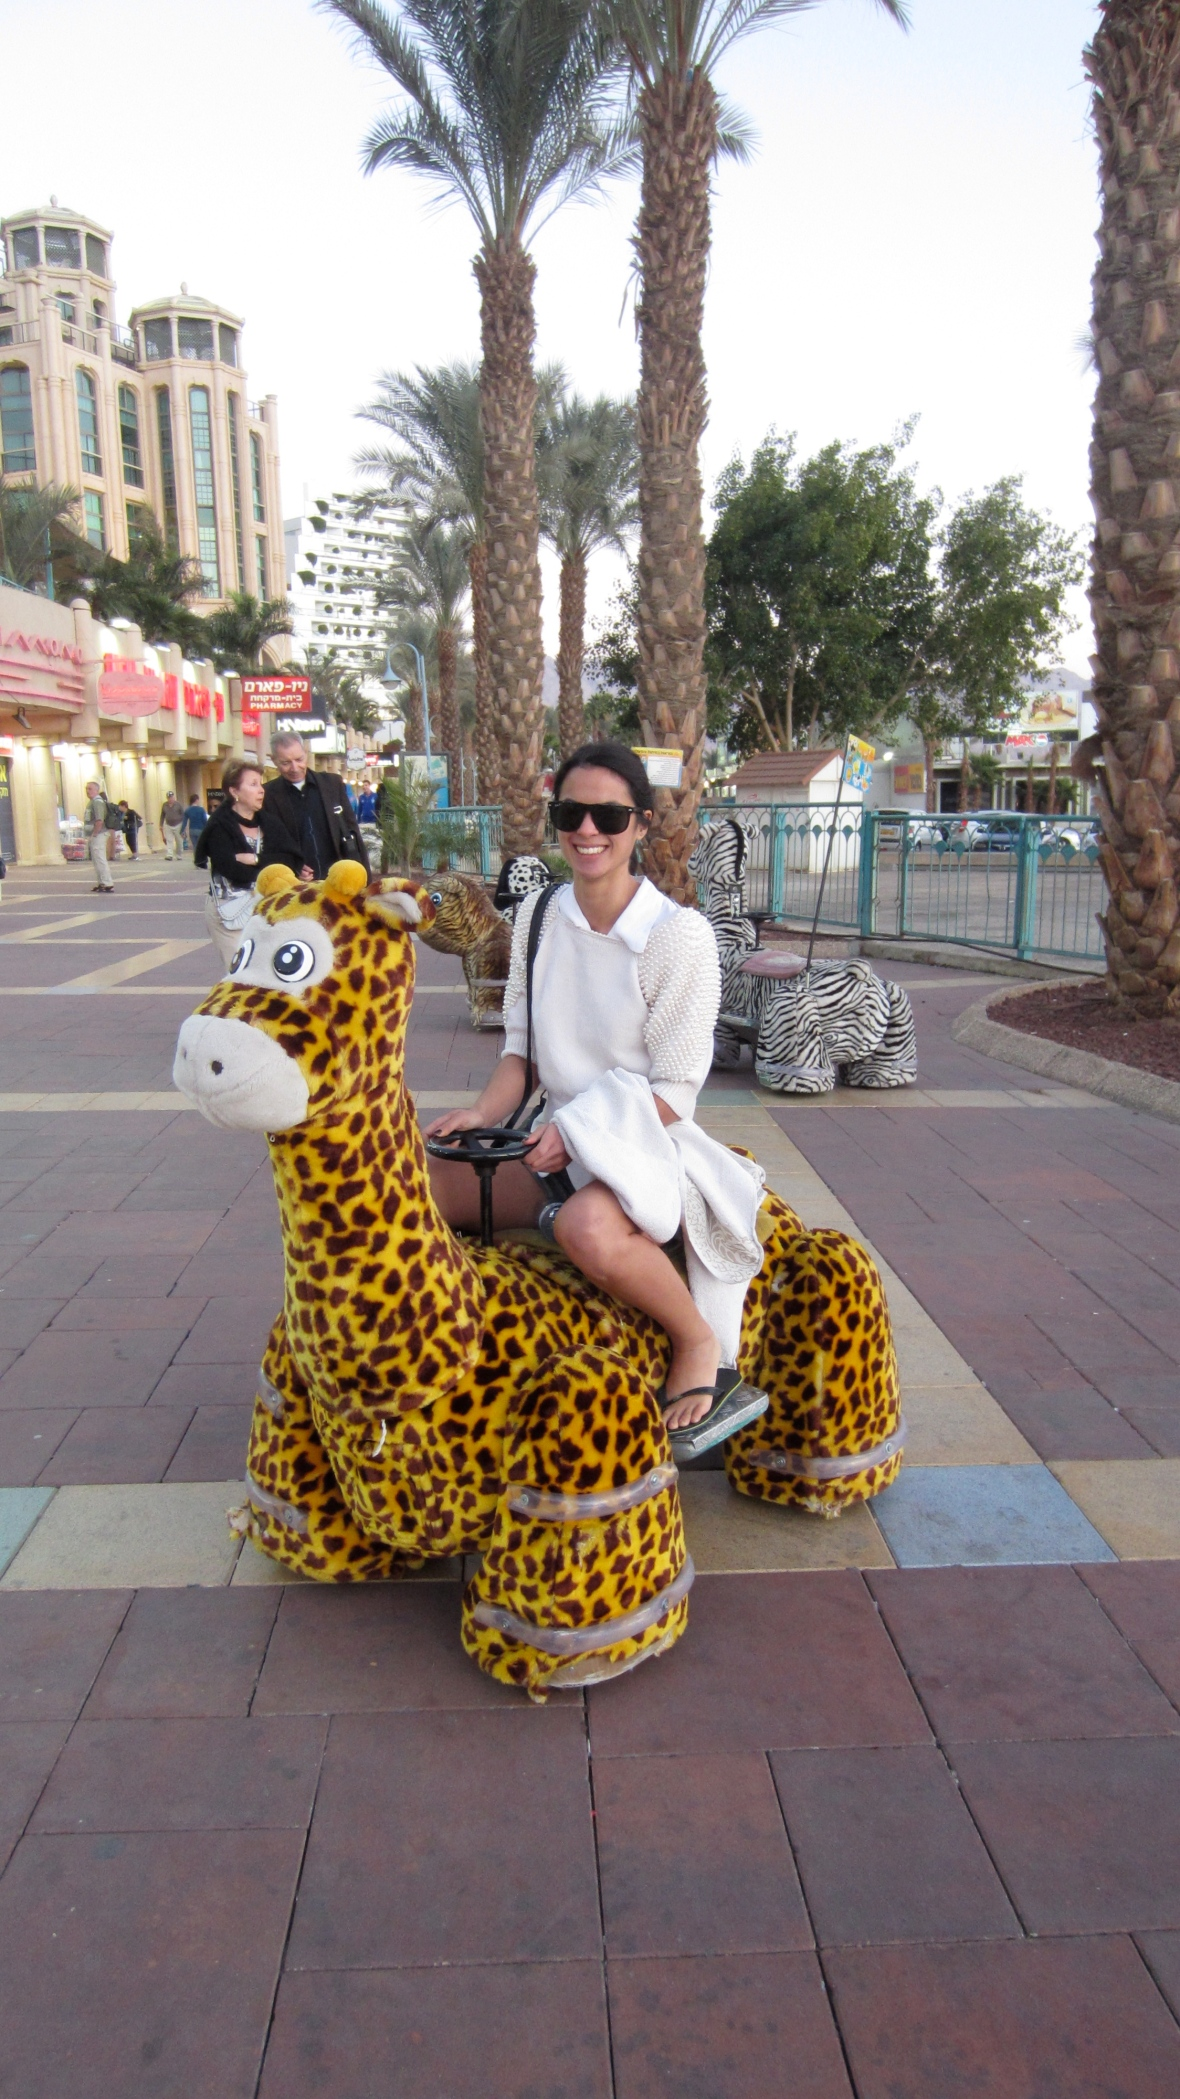 Sitting on a toy giraffe in Eilat, Israel